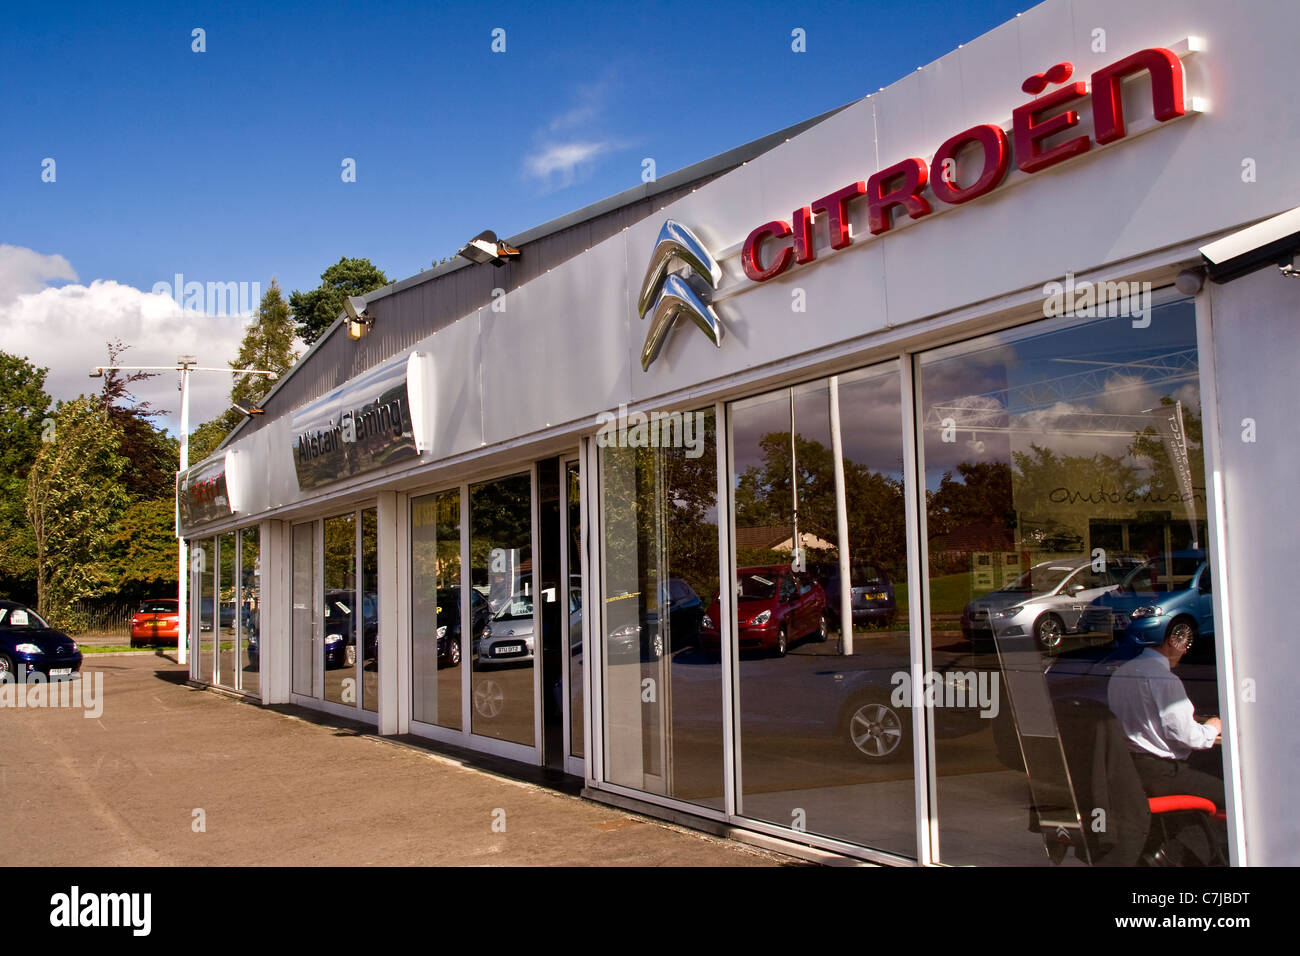 reflections on the front windows of ian fleming citroen car showroomreflections on the front windows of ian fleming citroen car showroom on a sunny day in urban dundee,uk